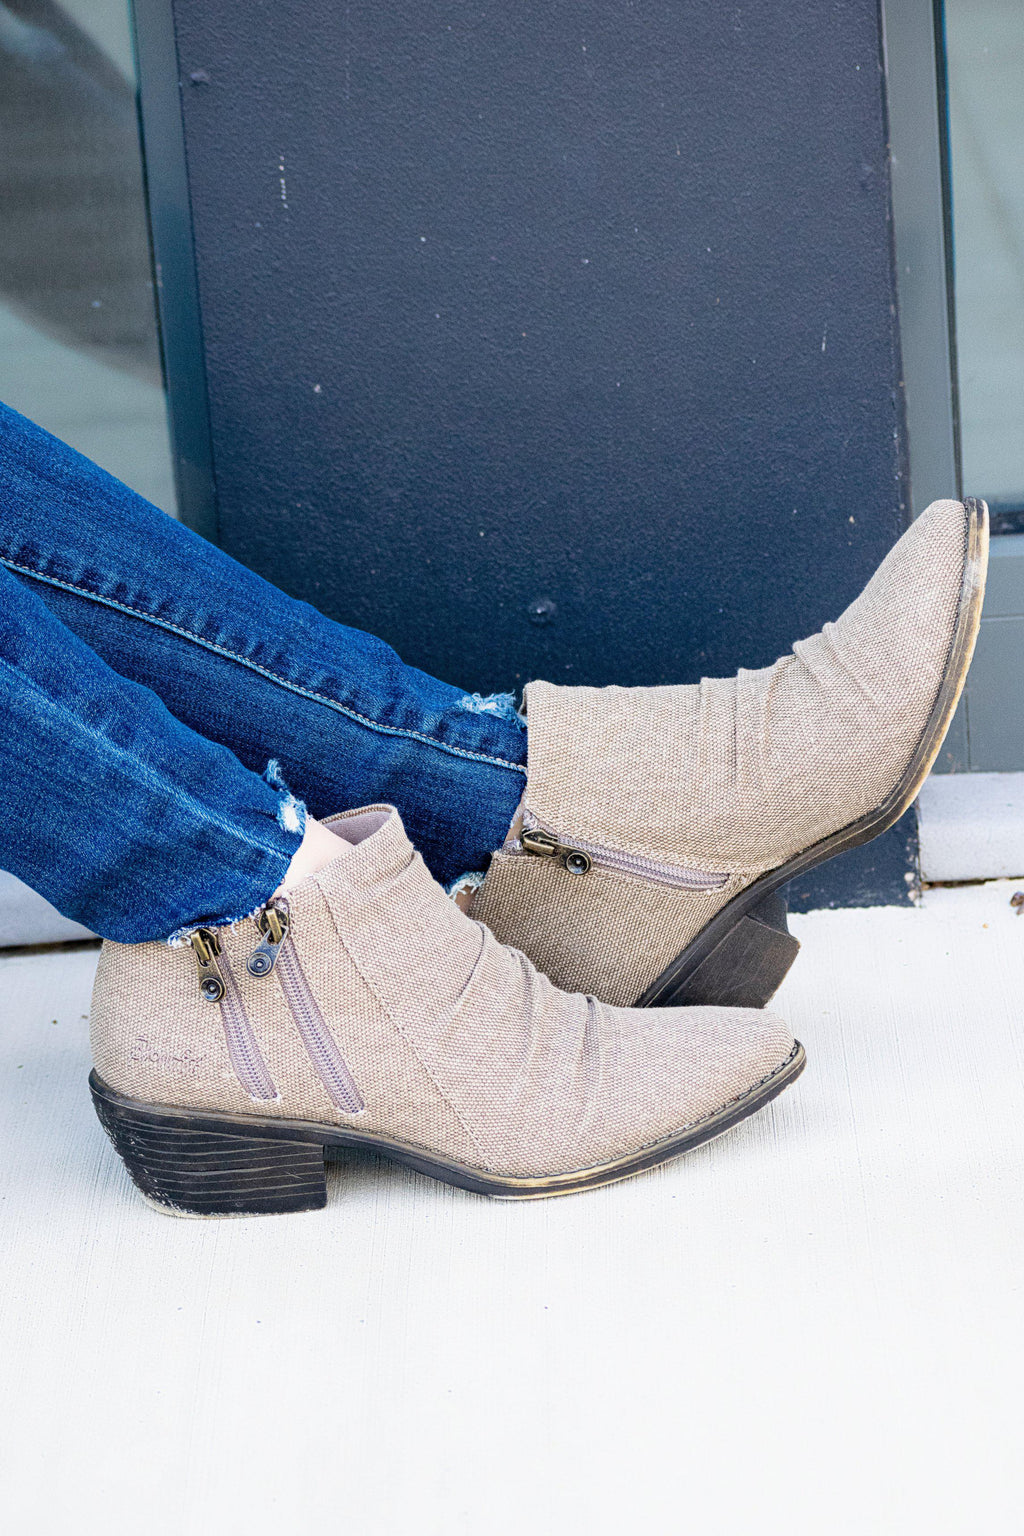 Blowfish Wander Bootie- Lt. Taupe - 512 Boutique